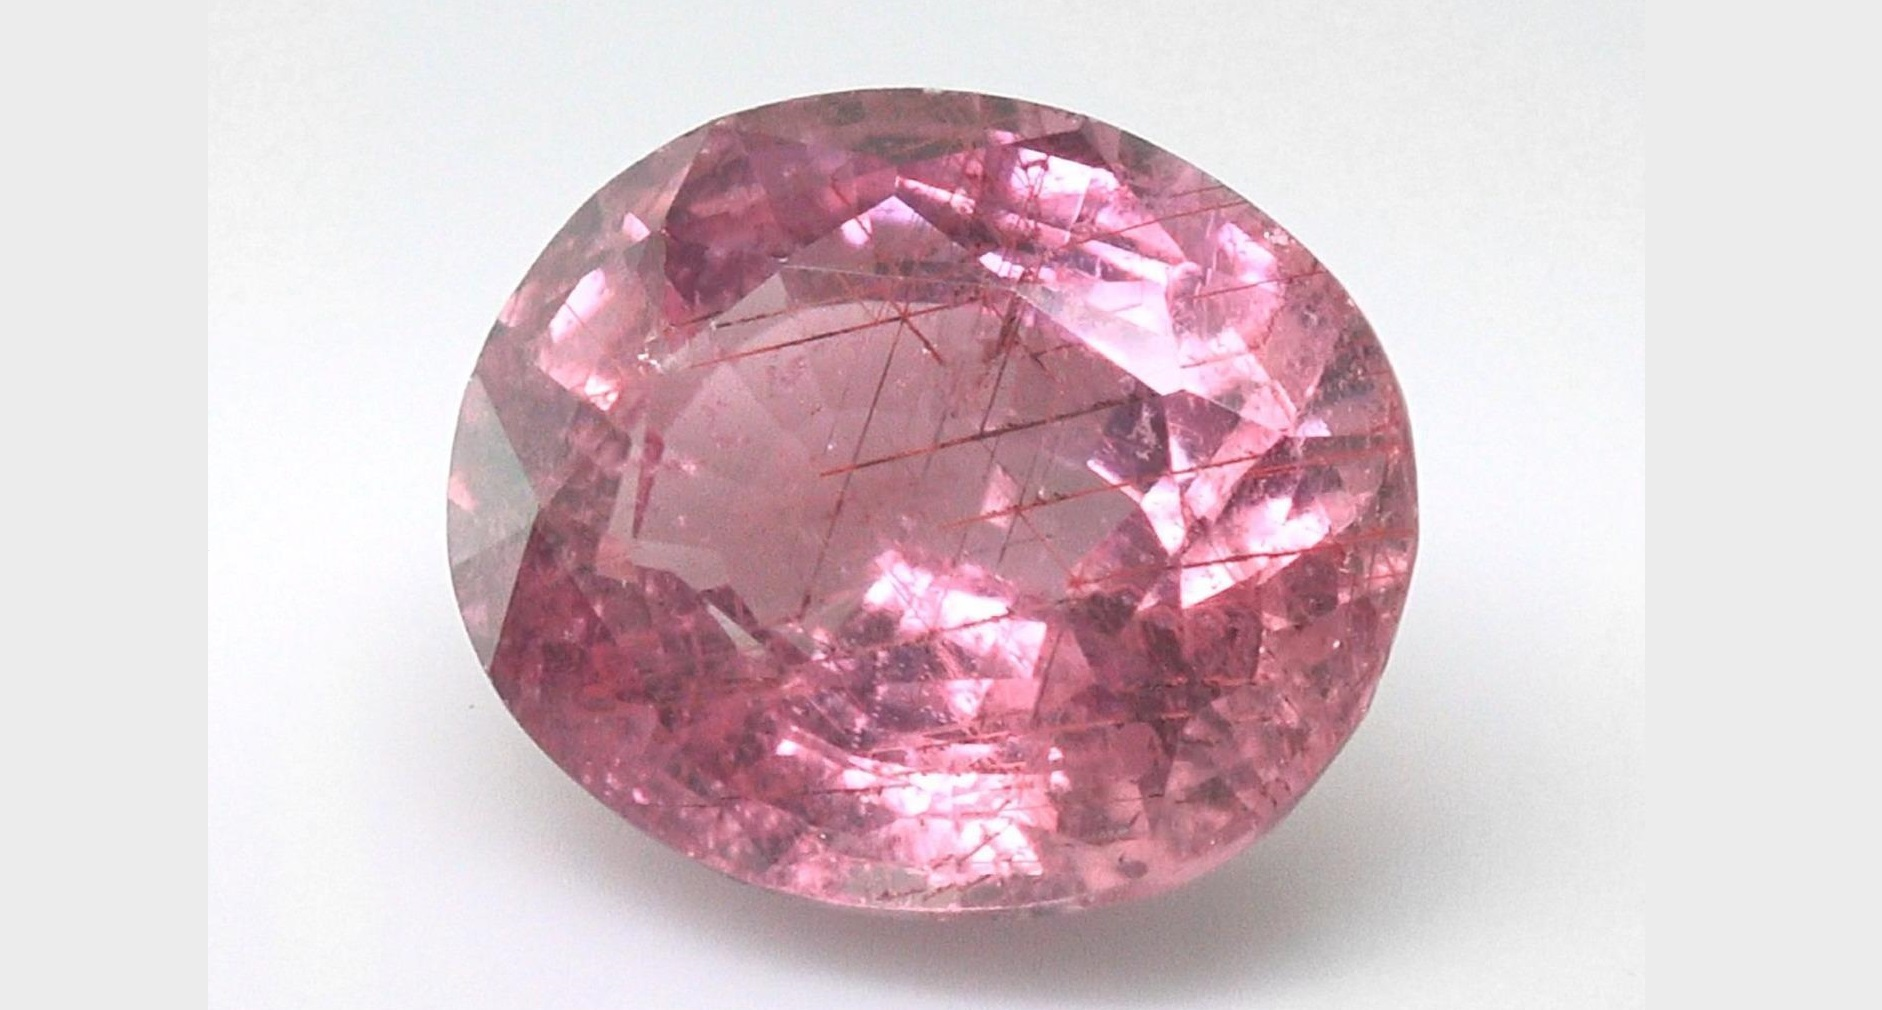 Certified Natural Unheated Sapphire Gorgeous Pinkish Orange Color 3.75 Carats